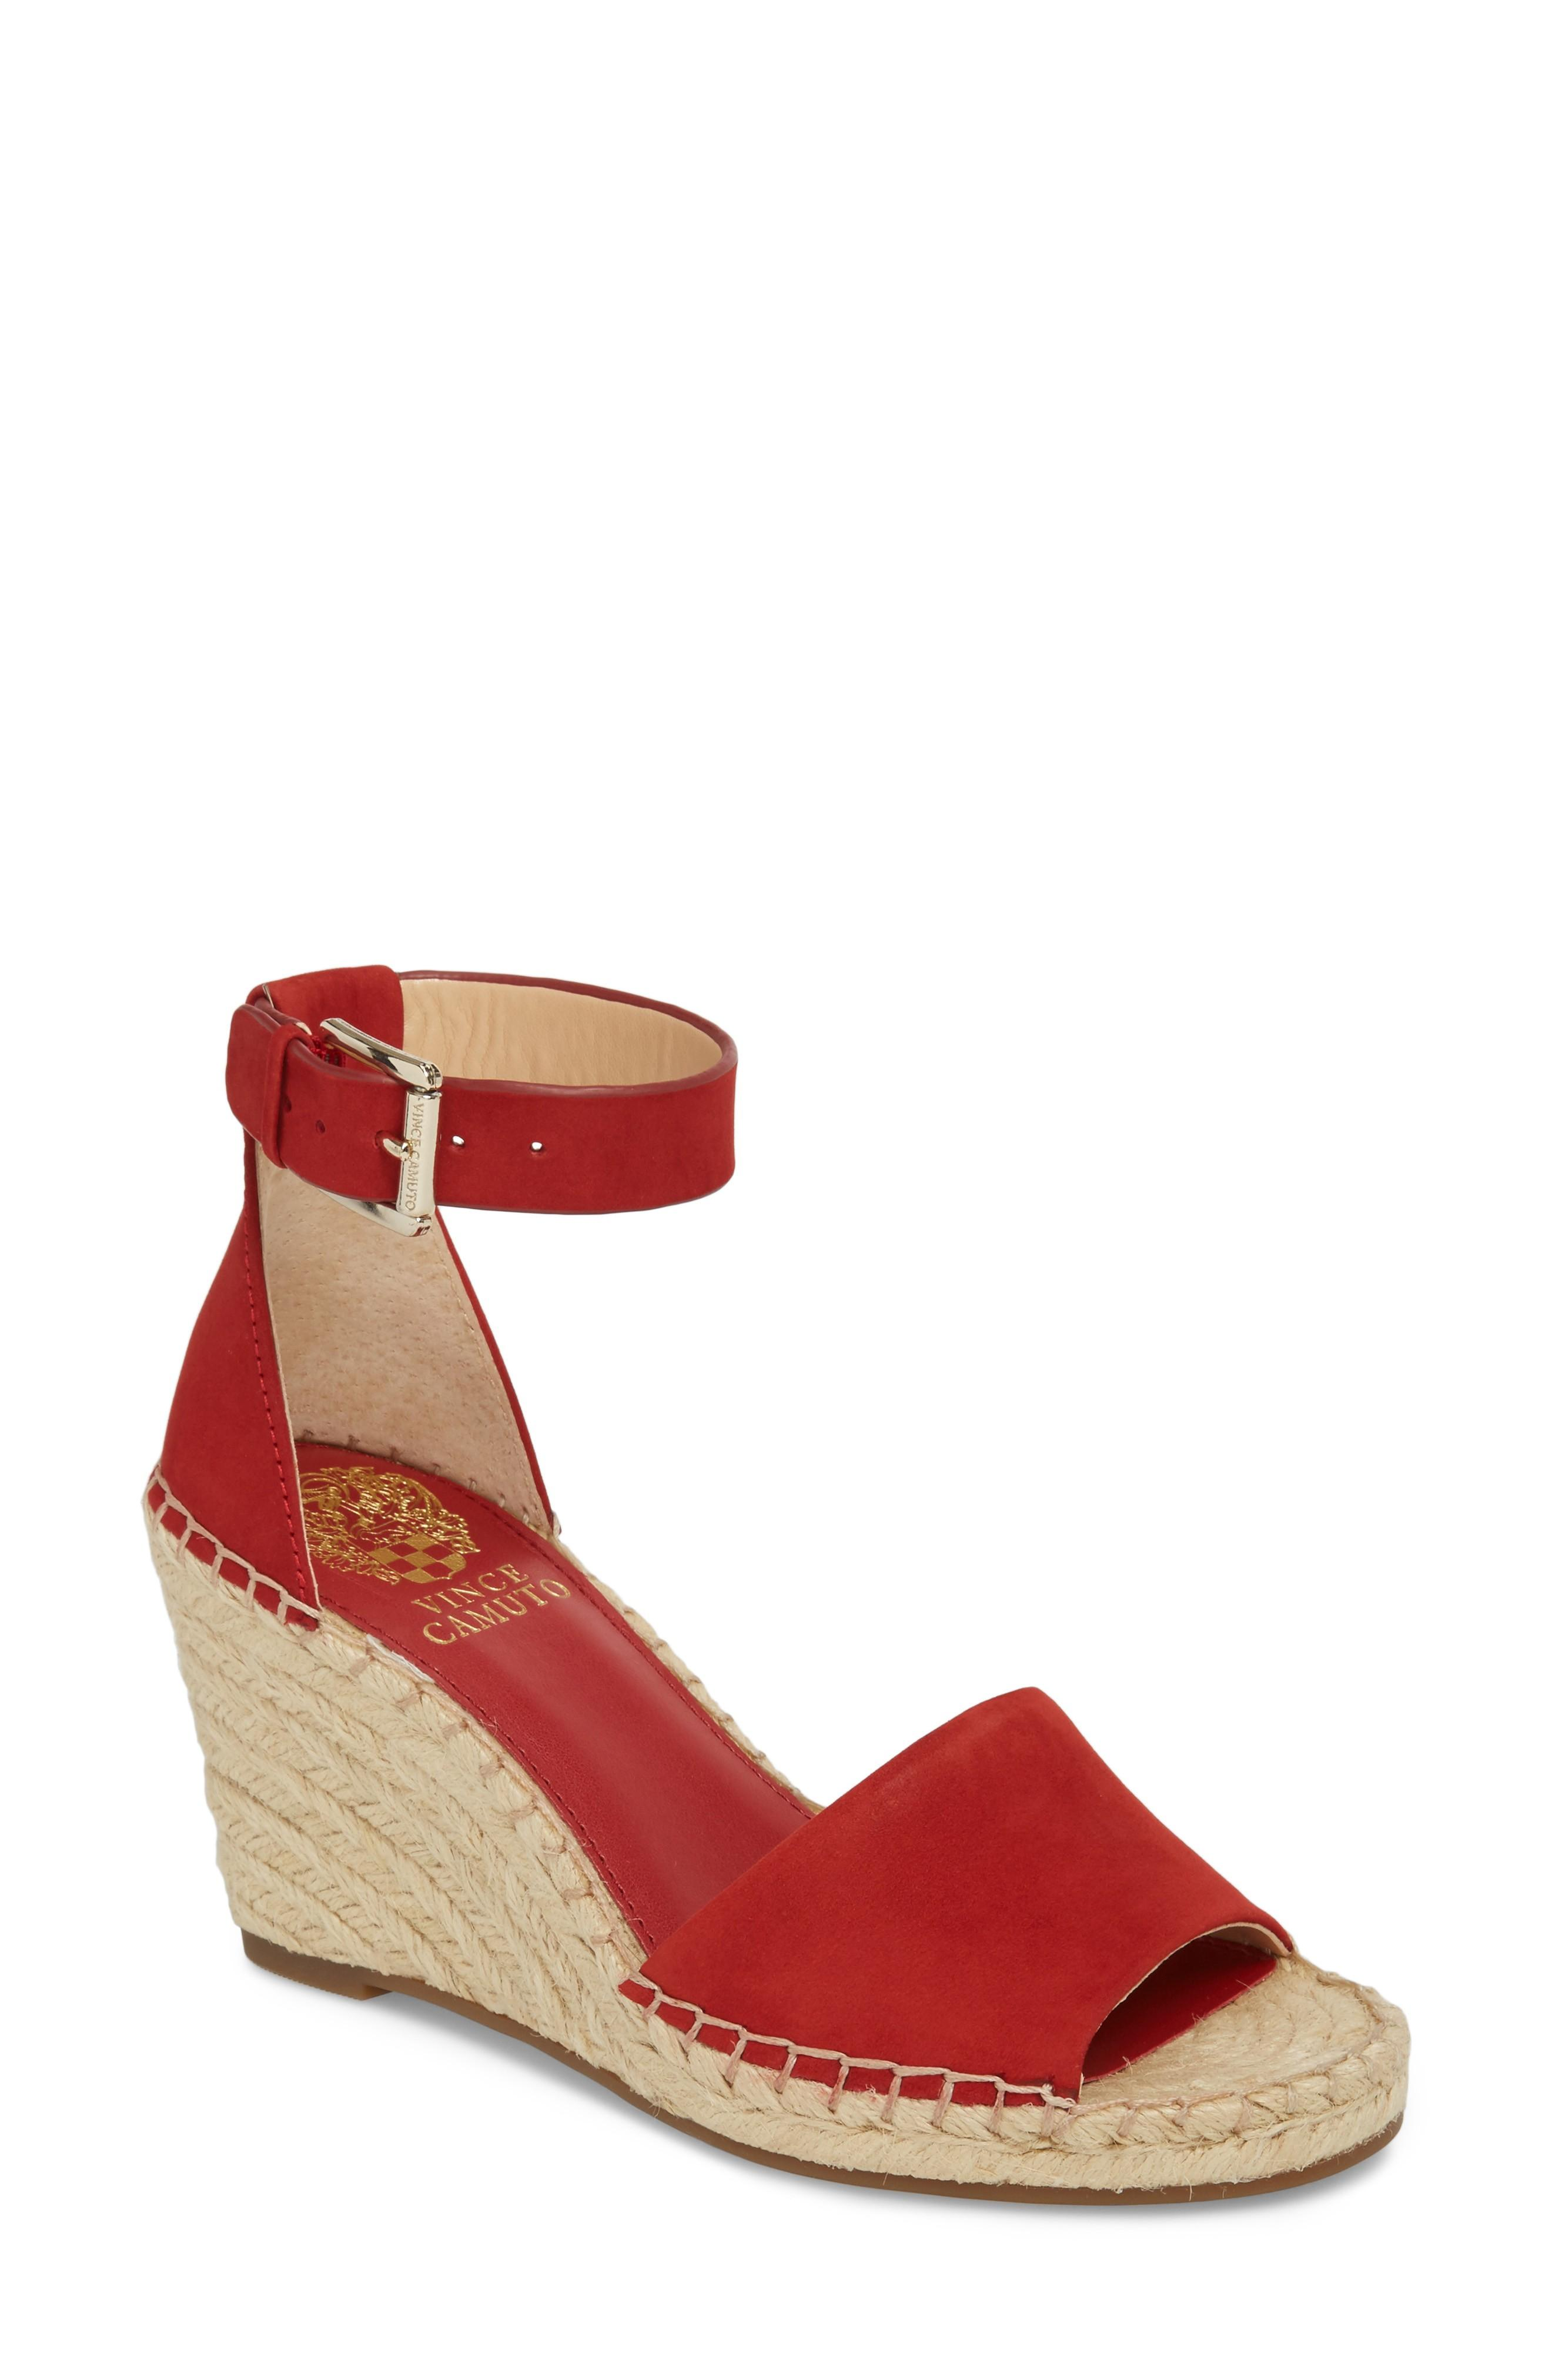 3461ca8ed7b Vince Camuto Leera Wedge Sandal In Cherry Red Leather